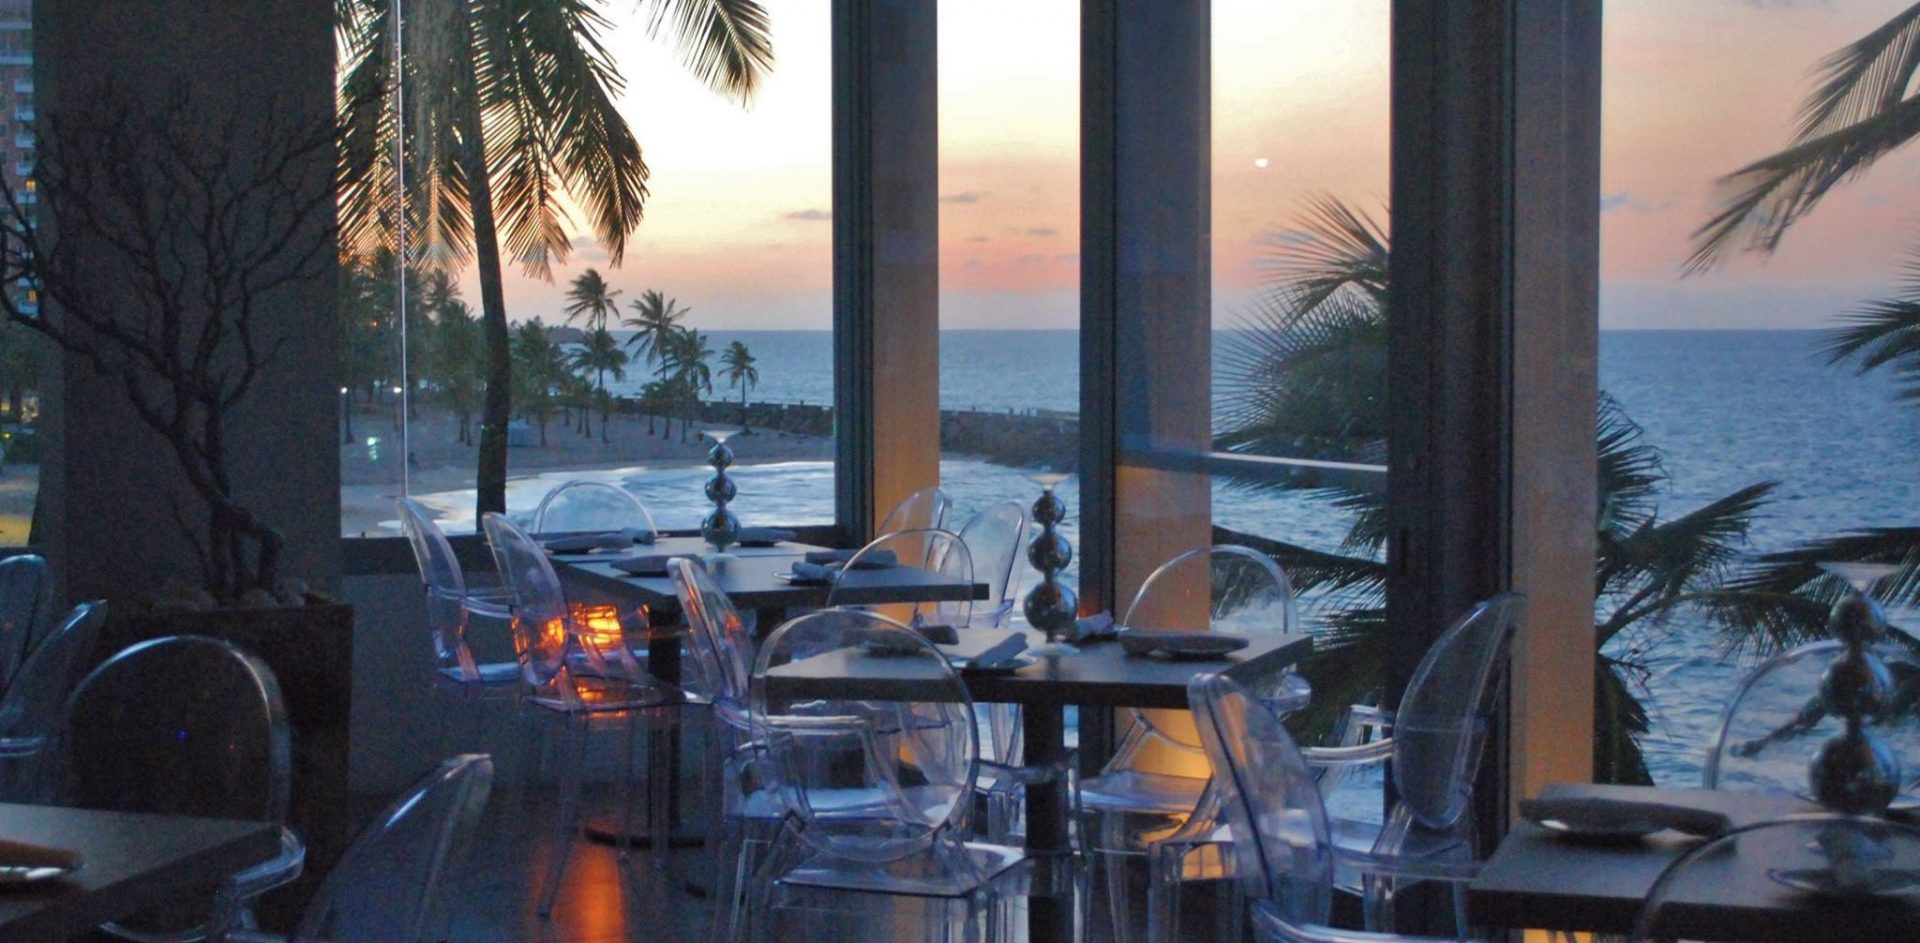 Most Romantic Restaurants in Puerto Rico